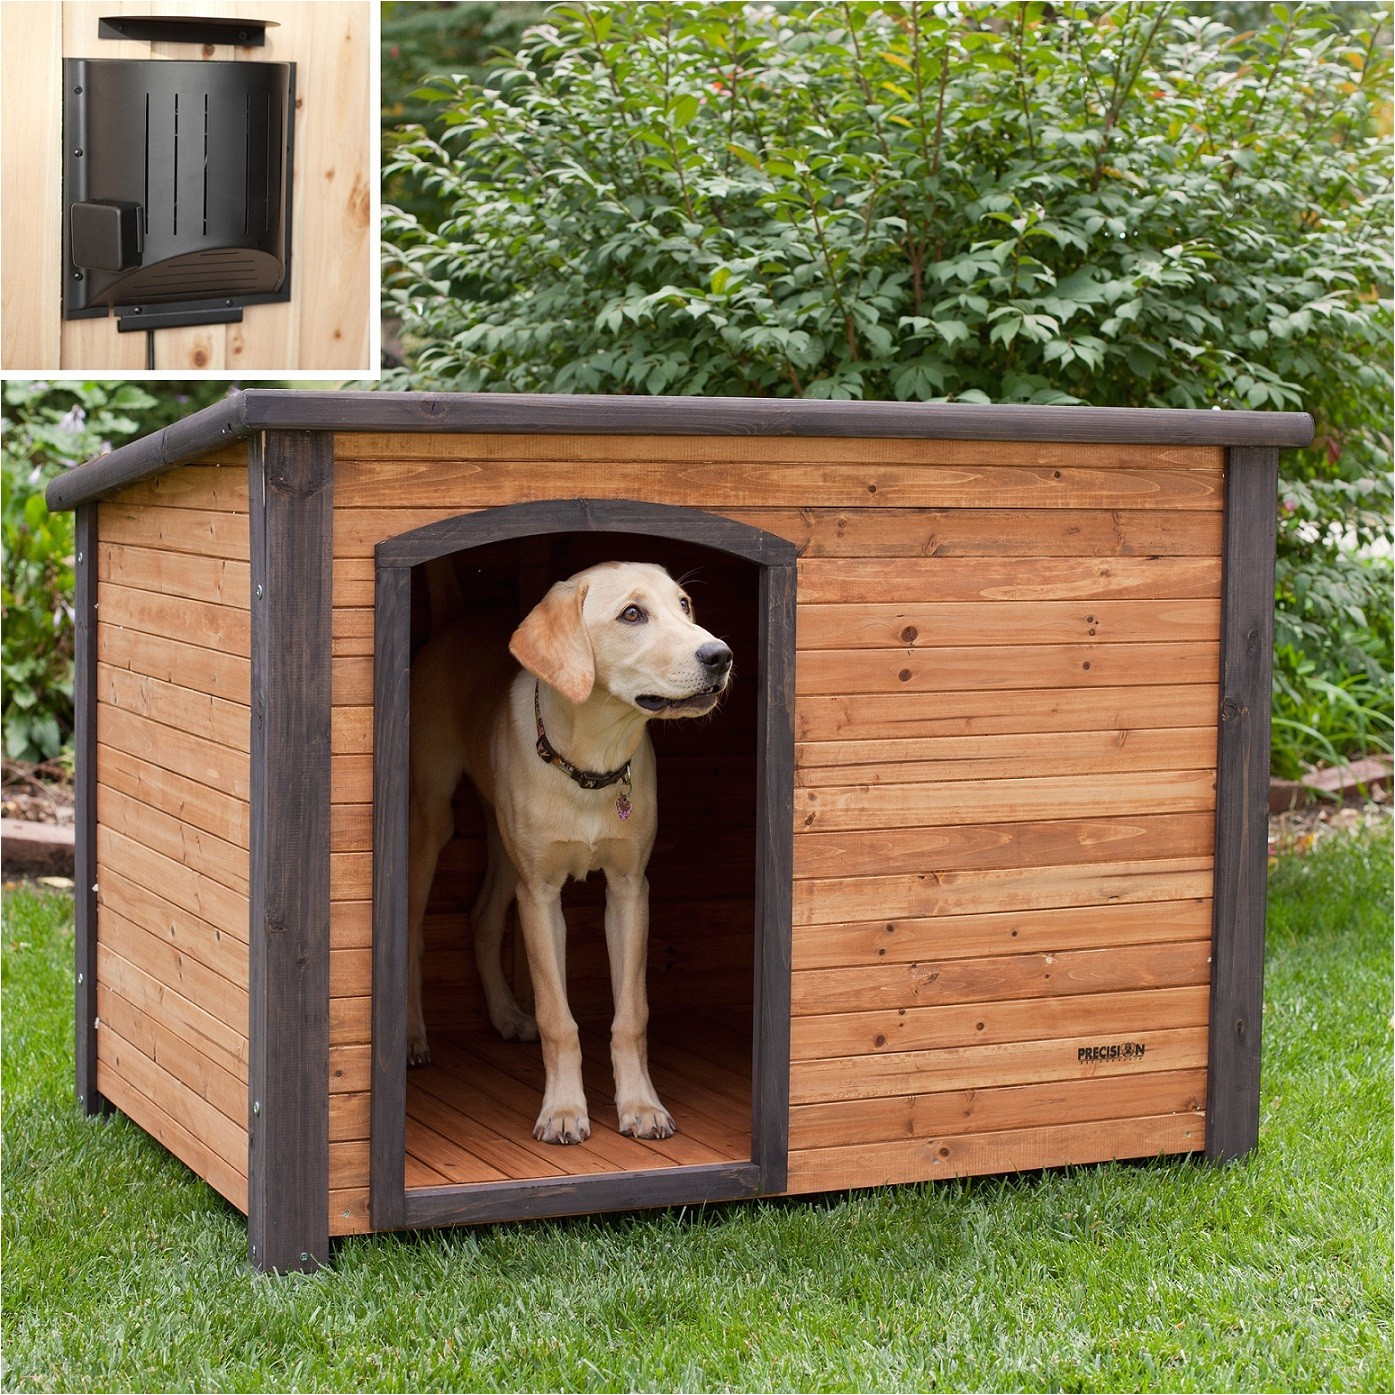 Building Plans for A Dog House Diy Dog House for Beginner Ideas